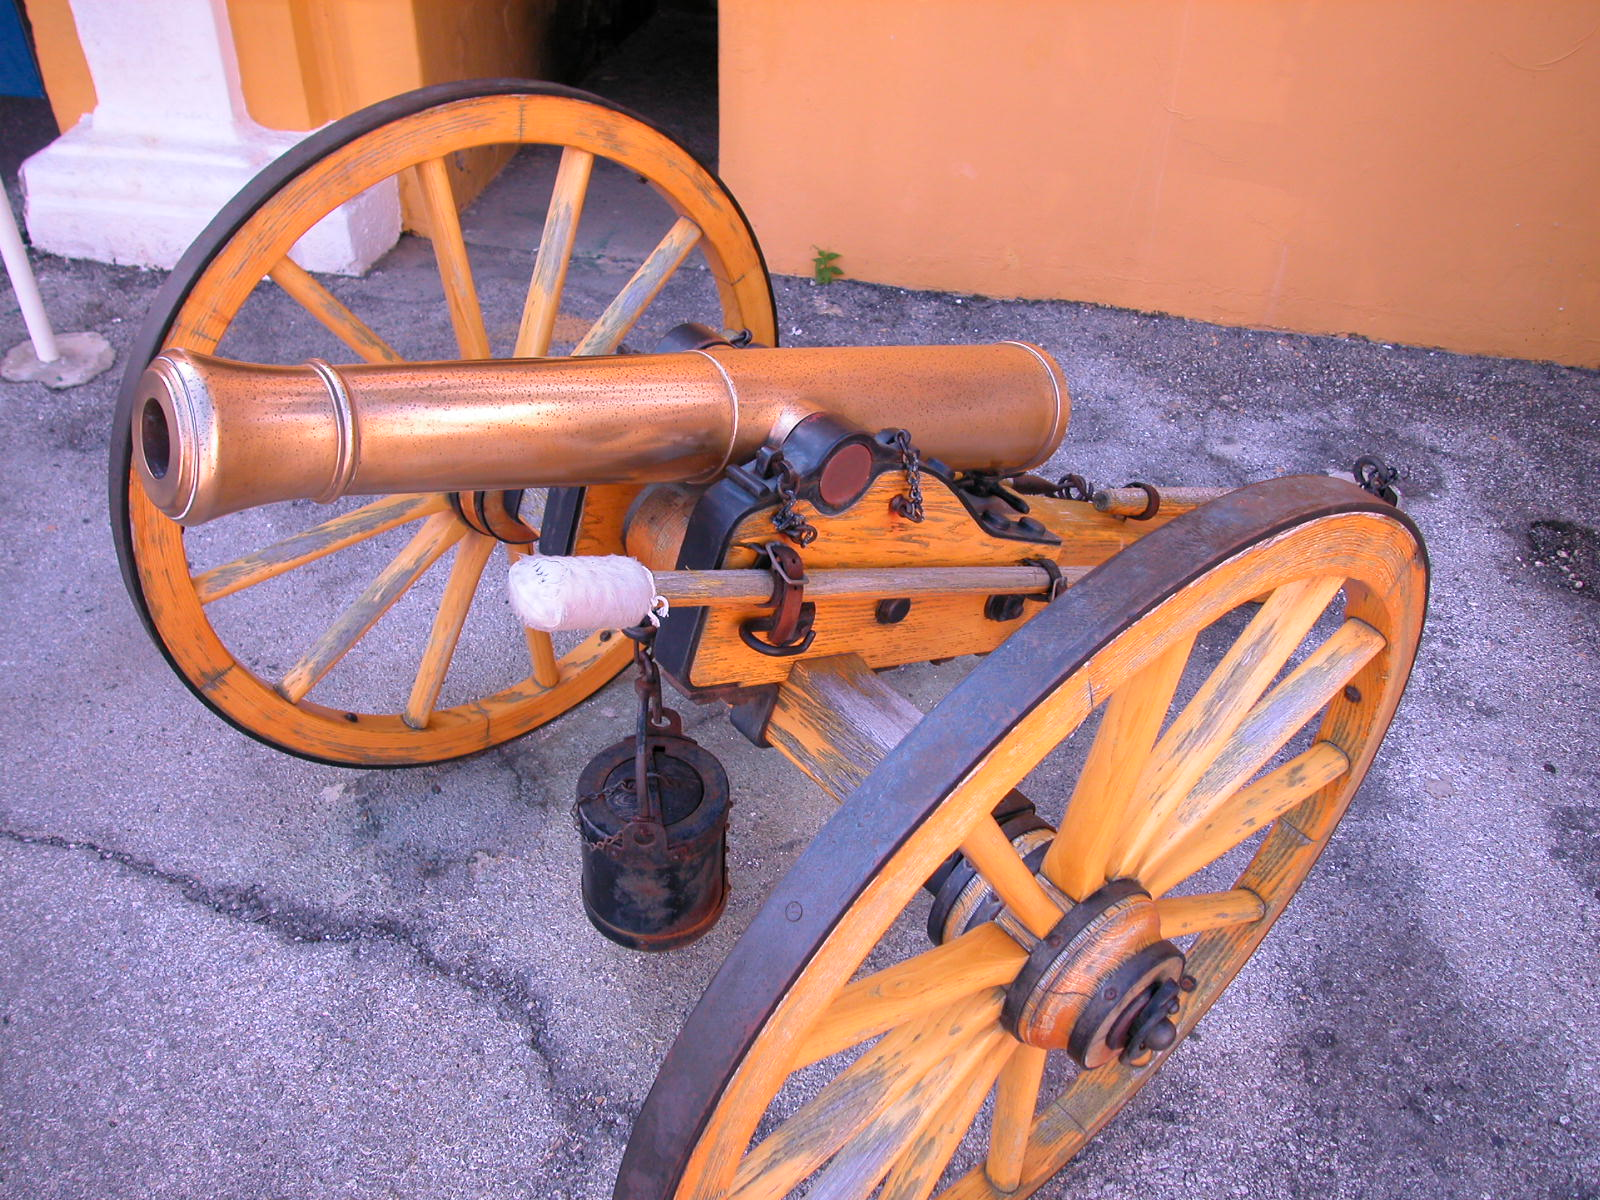 small copper cannon wheels weapon